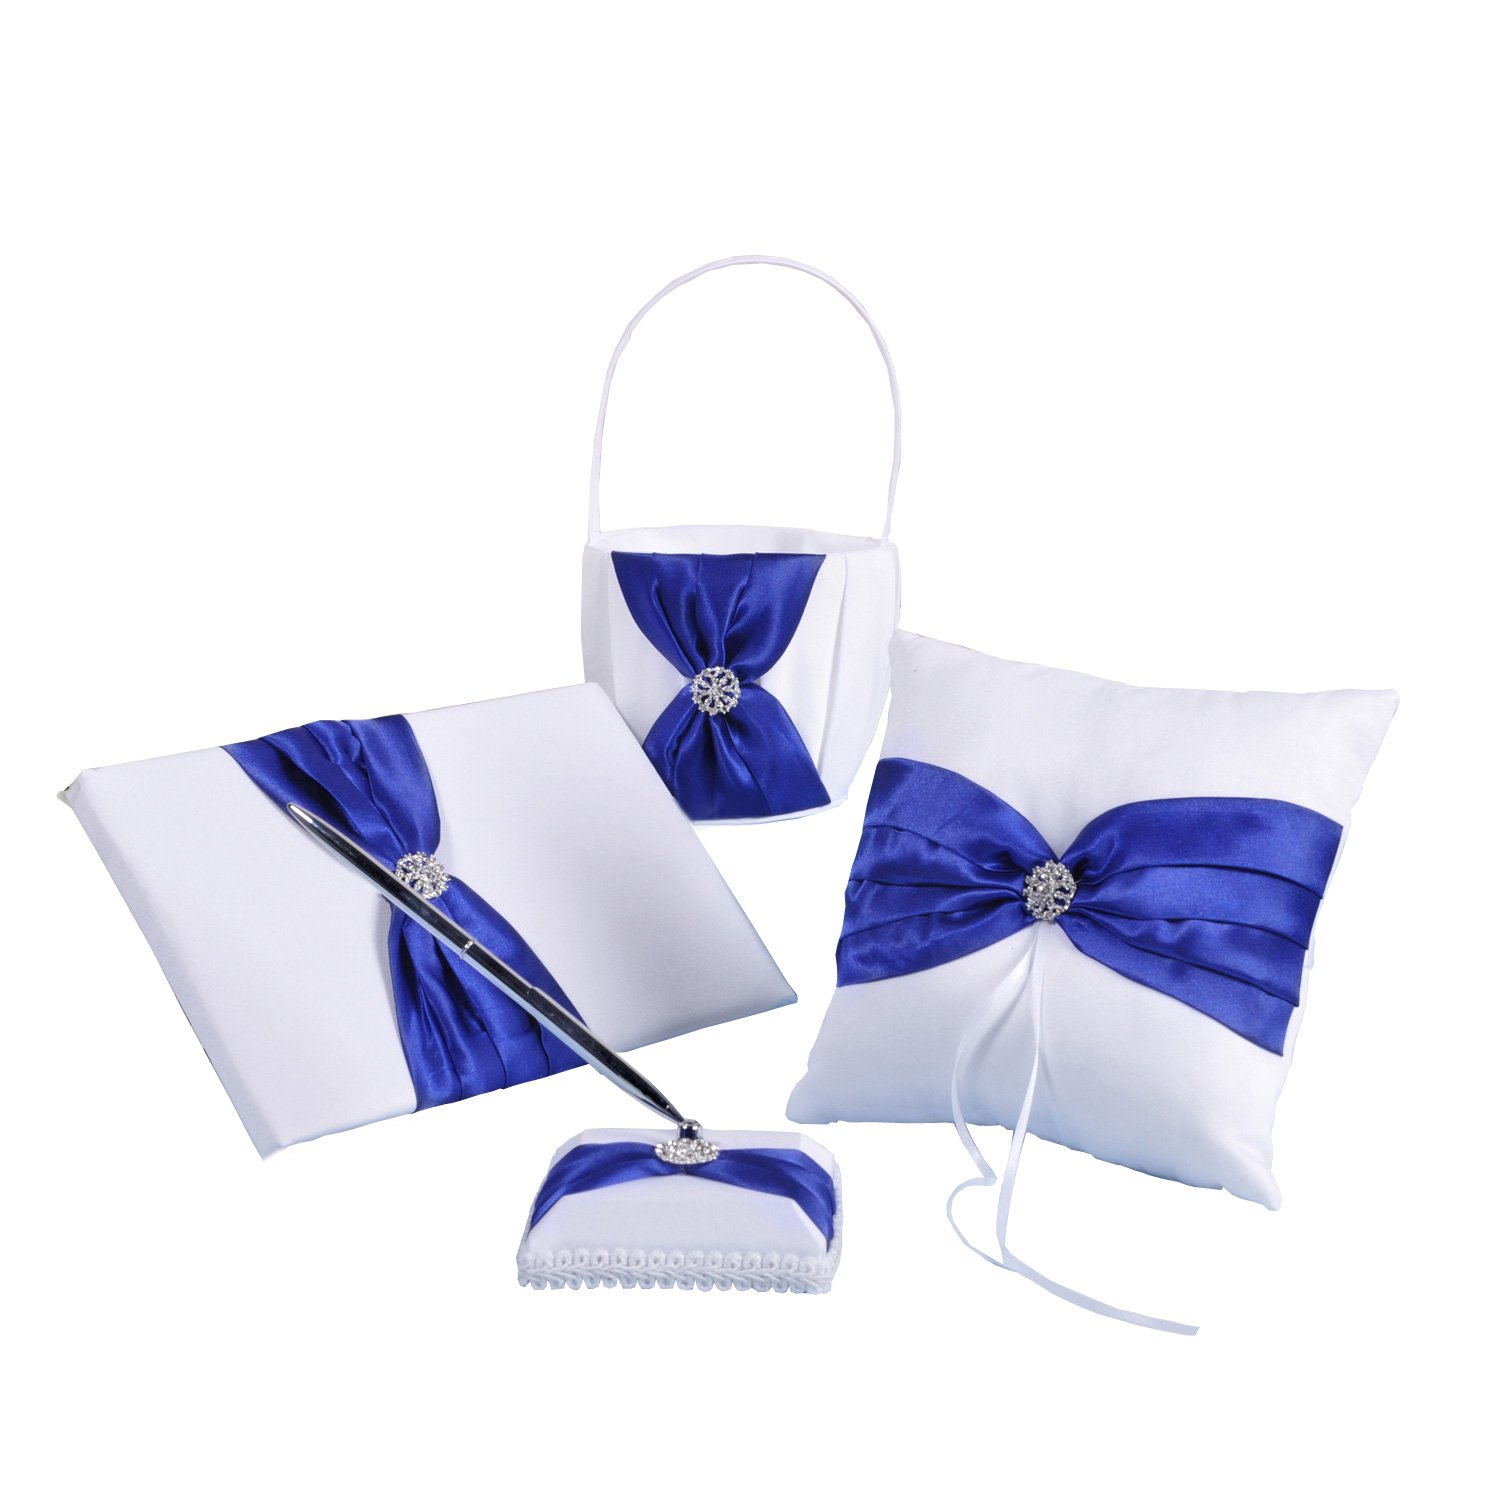 Royal Blue Satin Bow Ceremony Collection Guest book & pen set Flower Basket Ring Pillow by Adorona